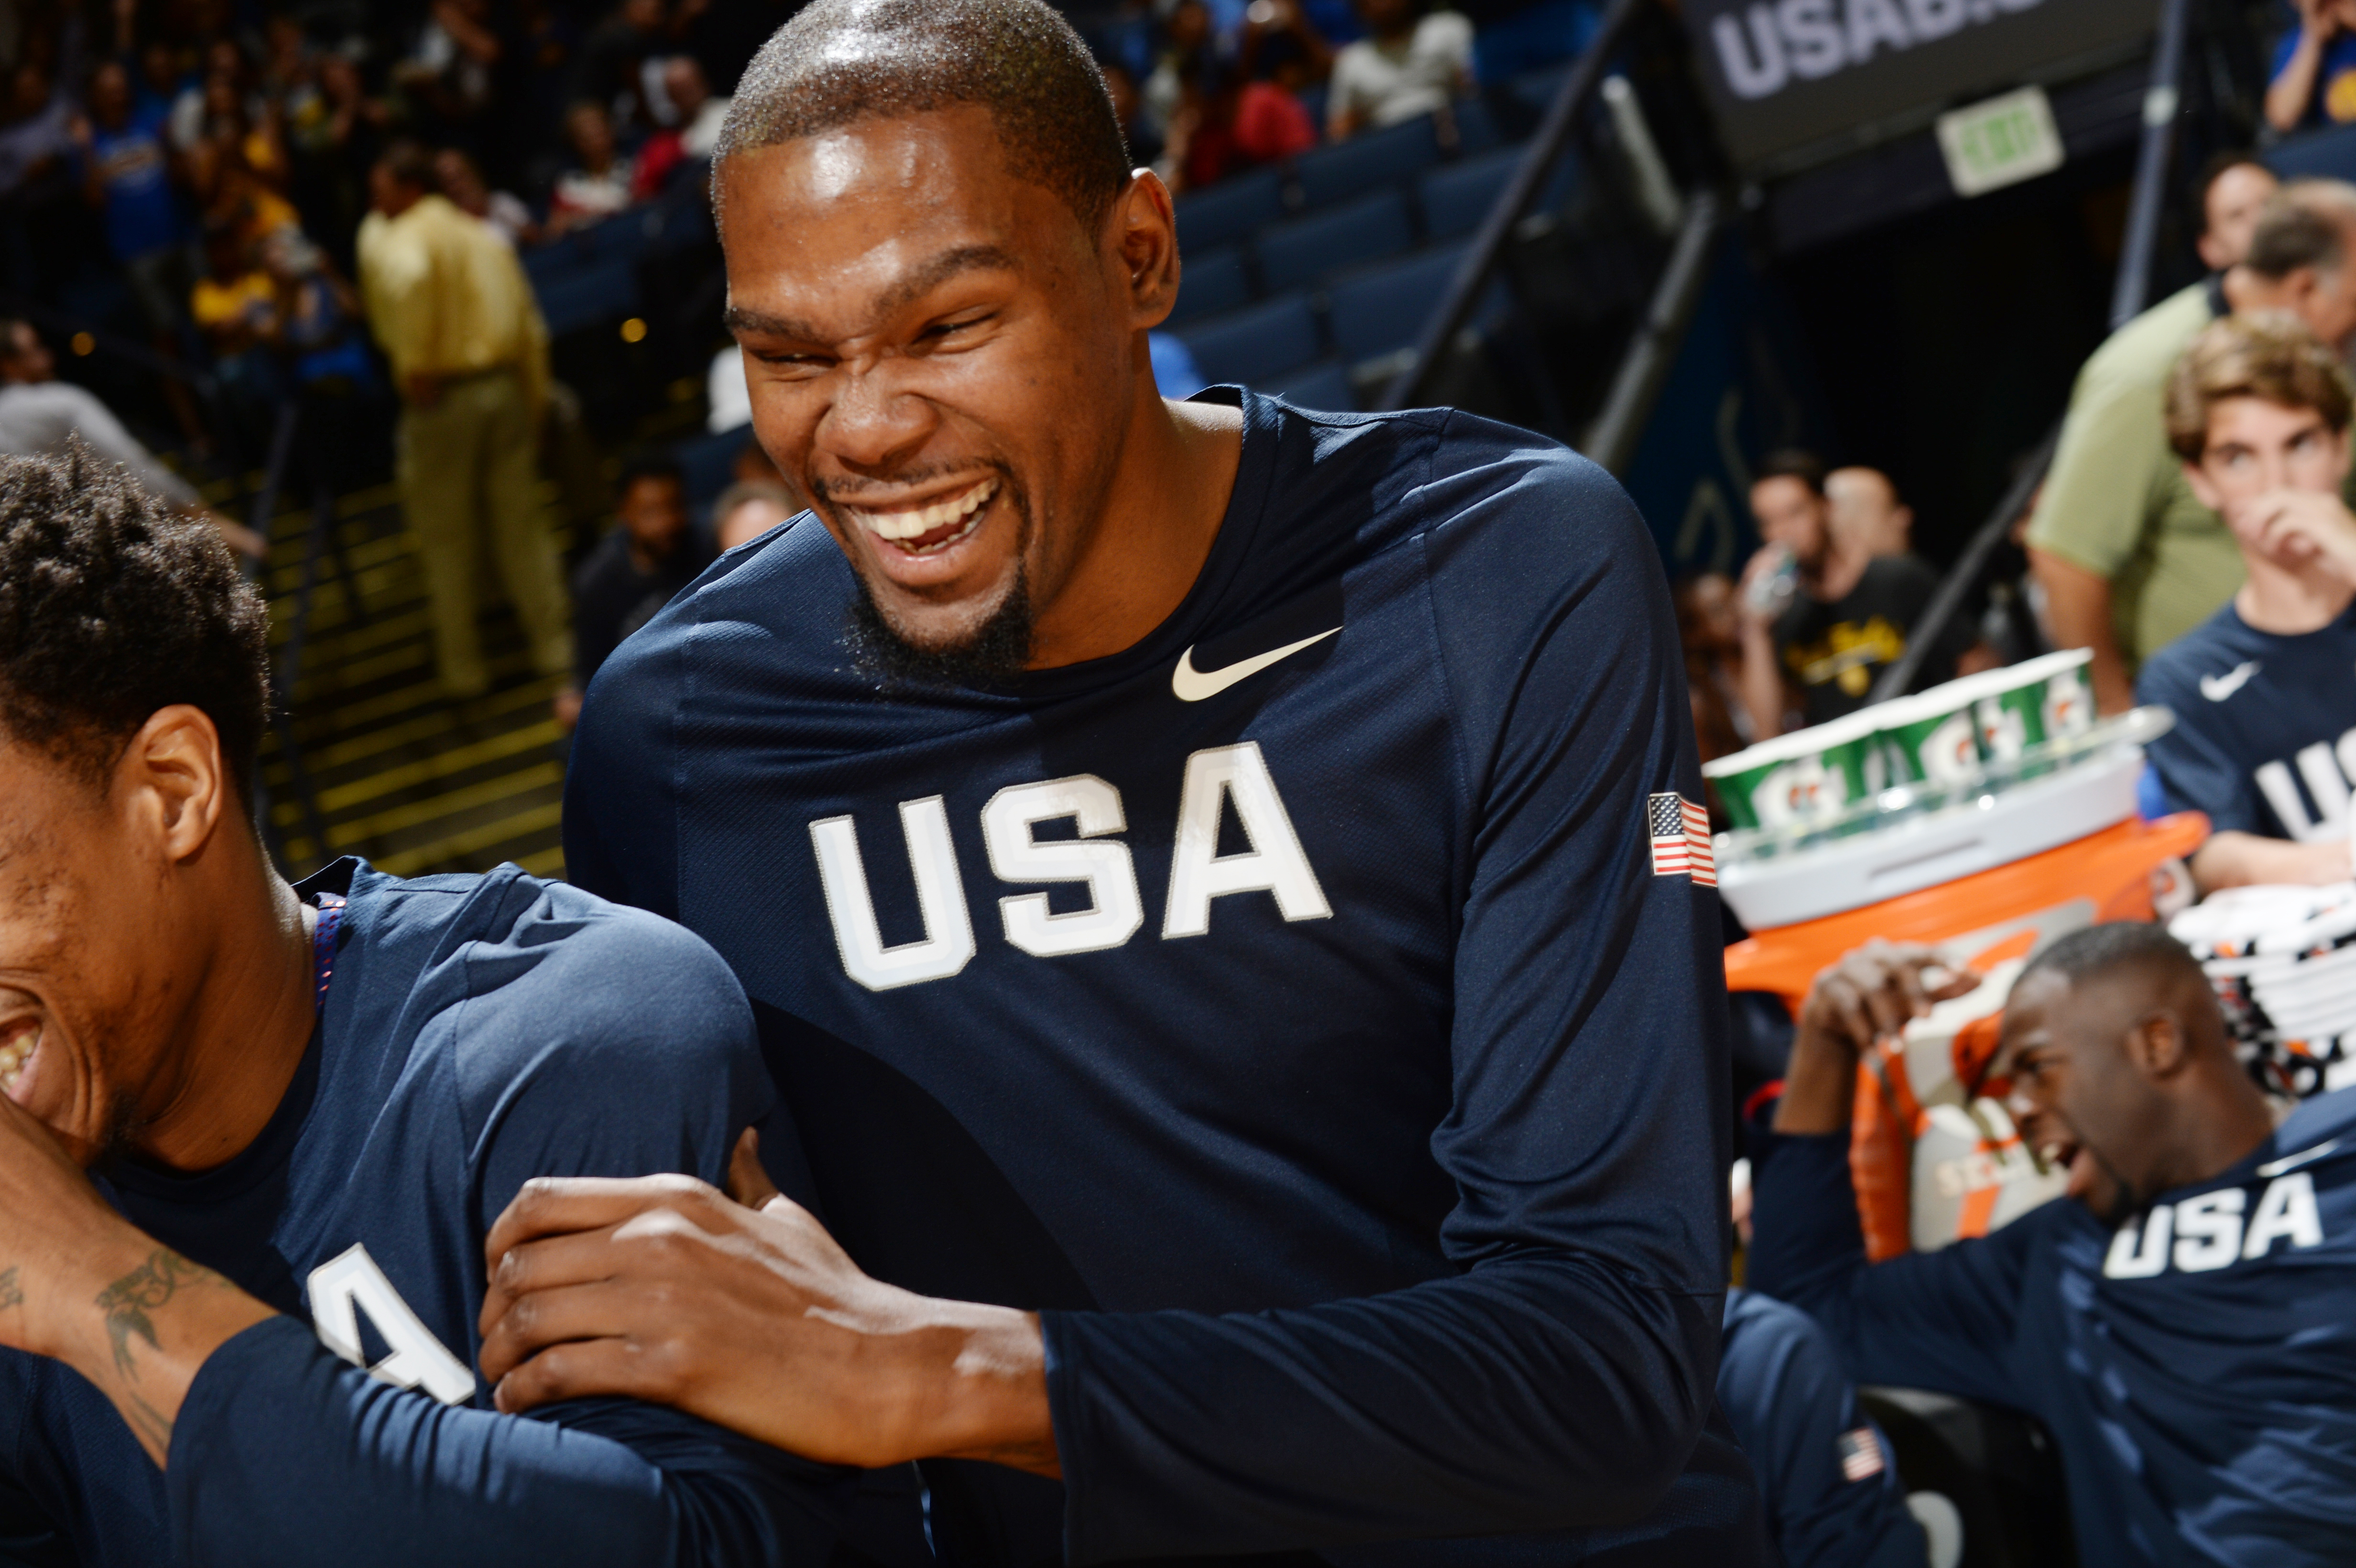 OAKLAND, CA - JULY 26: Kevin Durant #5 of the USA Basketball Men's National Team warms up before the game against China on July 26, 2016 at ORACLE Arena in Oakland, California.